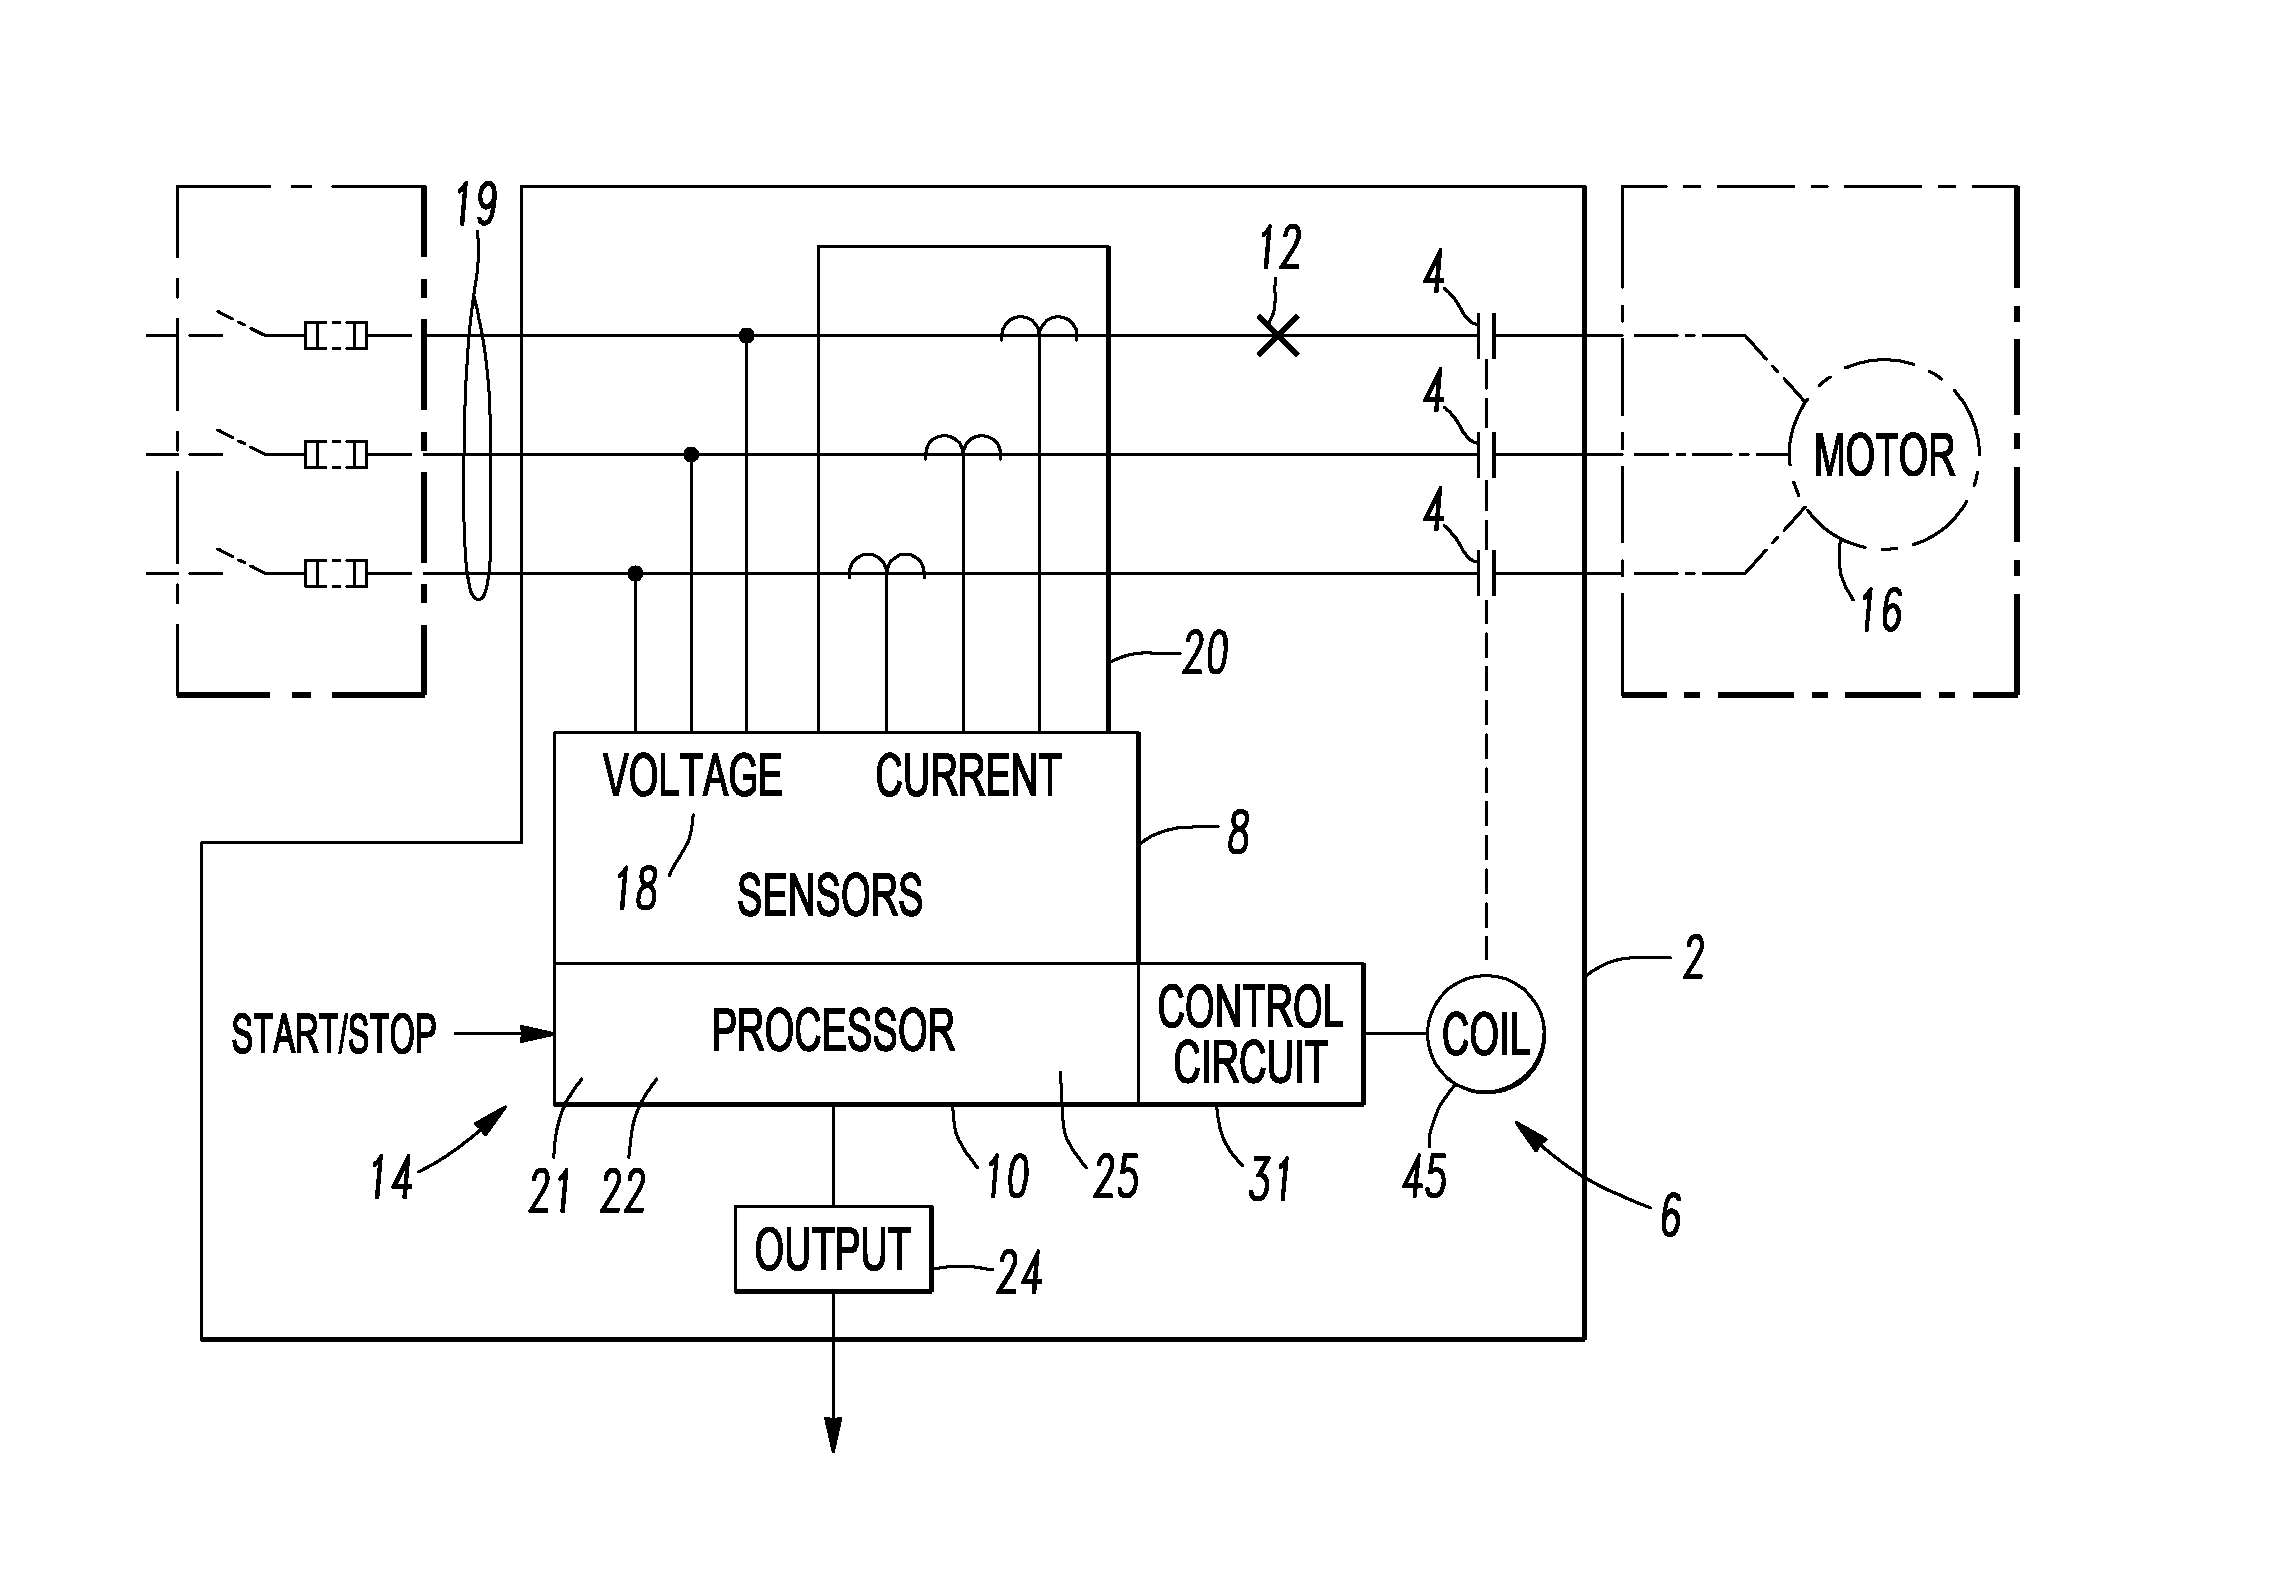 Patent Us8493012 Protection Relay Electrical Switching Apparatus Relays A Is An Electrically Operated Switch Current Flowing Drawing